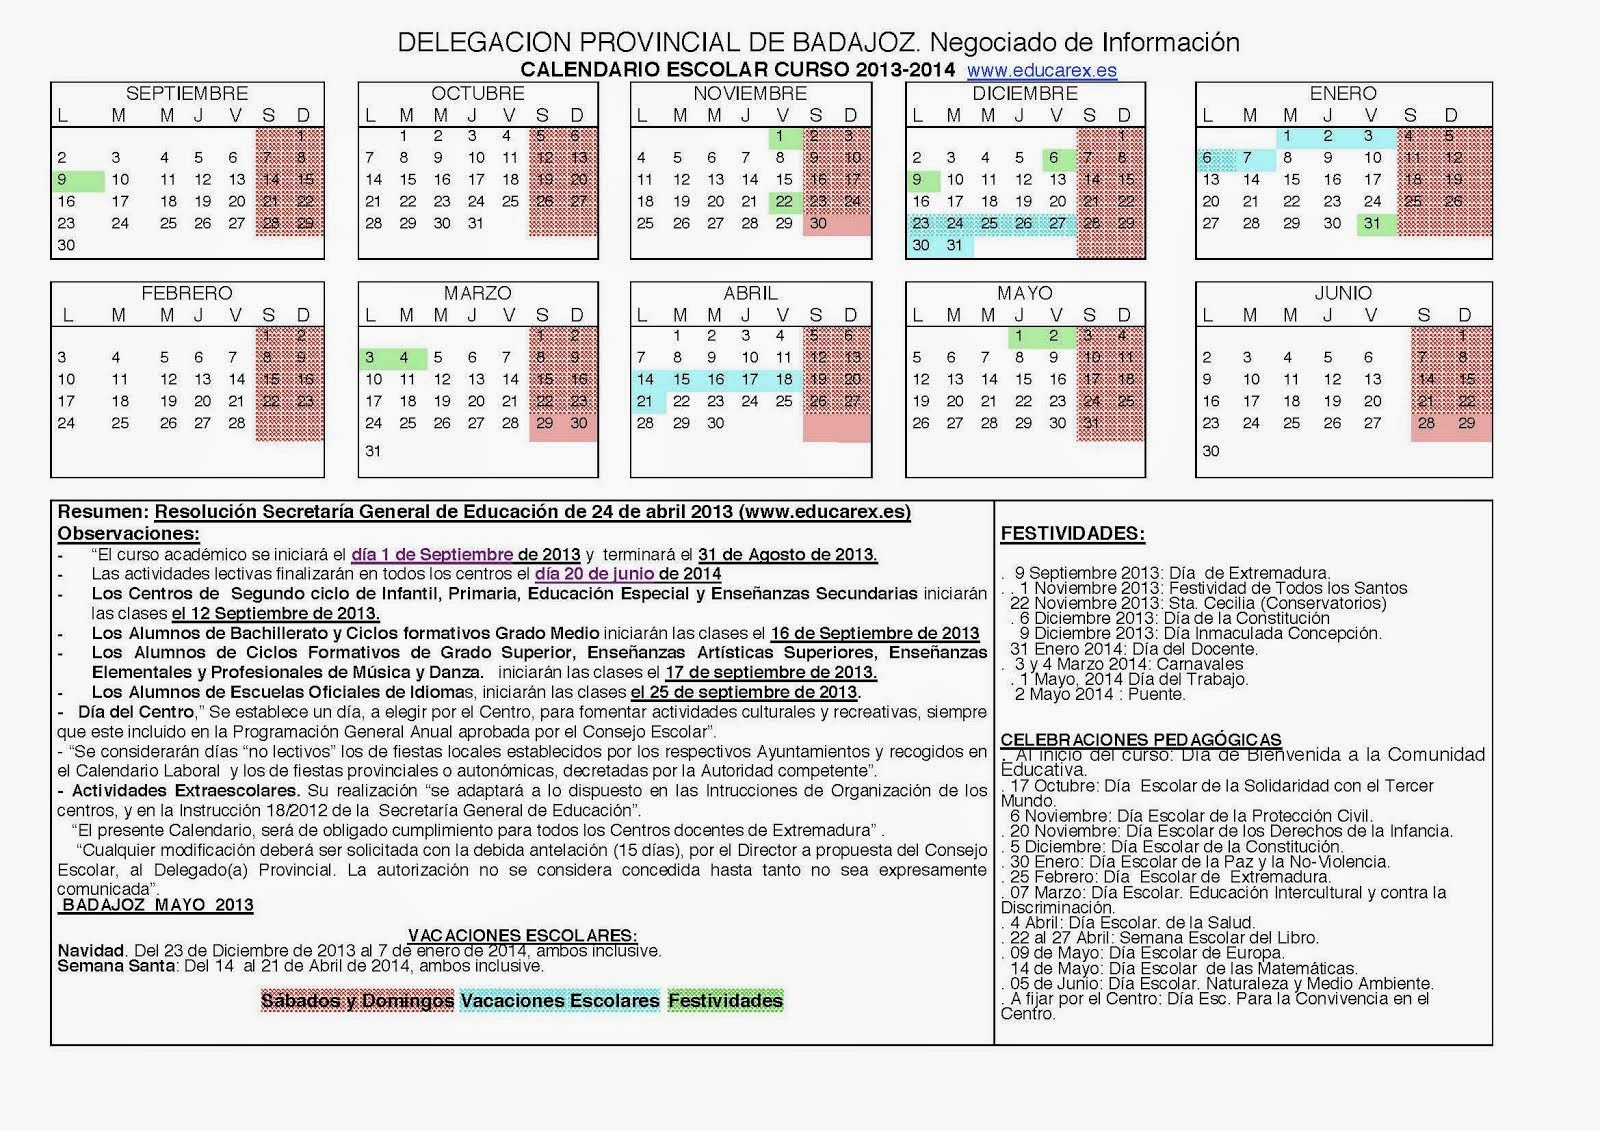 Calendario escolar (Fuente Educarex)